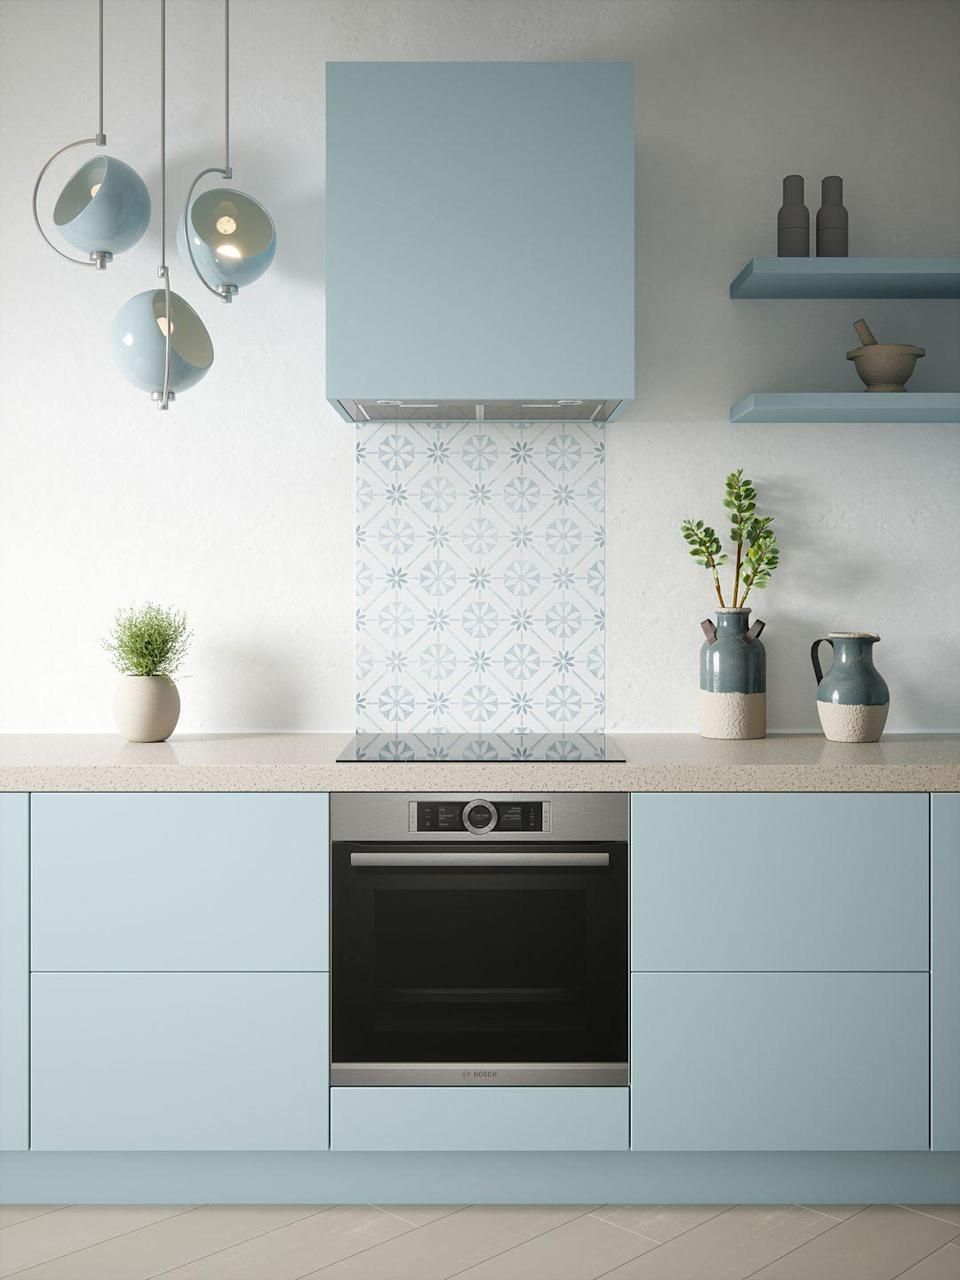 """<p>This pretty blue splashback pays homage to continental-style tiles and works wonderfully in any kitchen.</p><p>House Beautiful Heritage splashback in Sky Blue (600mm x 750mm), £175. </p><p><a class=""""link rapid-noclick-resp"""" href=""""https://www.splashback.co.uk/shop/designer-splashbacks/house-beautiful/house-beautiful-heritage-sky-blue-splashback-600x750mm/"""" rel=""""nofollow noopener"""" target=""""_blank"""" data-ylk=""""slk:BUY NOW"""">BUY NOW</a><br></p>"""